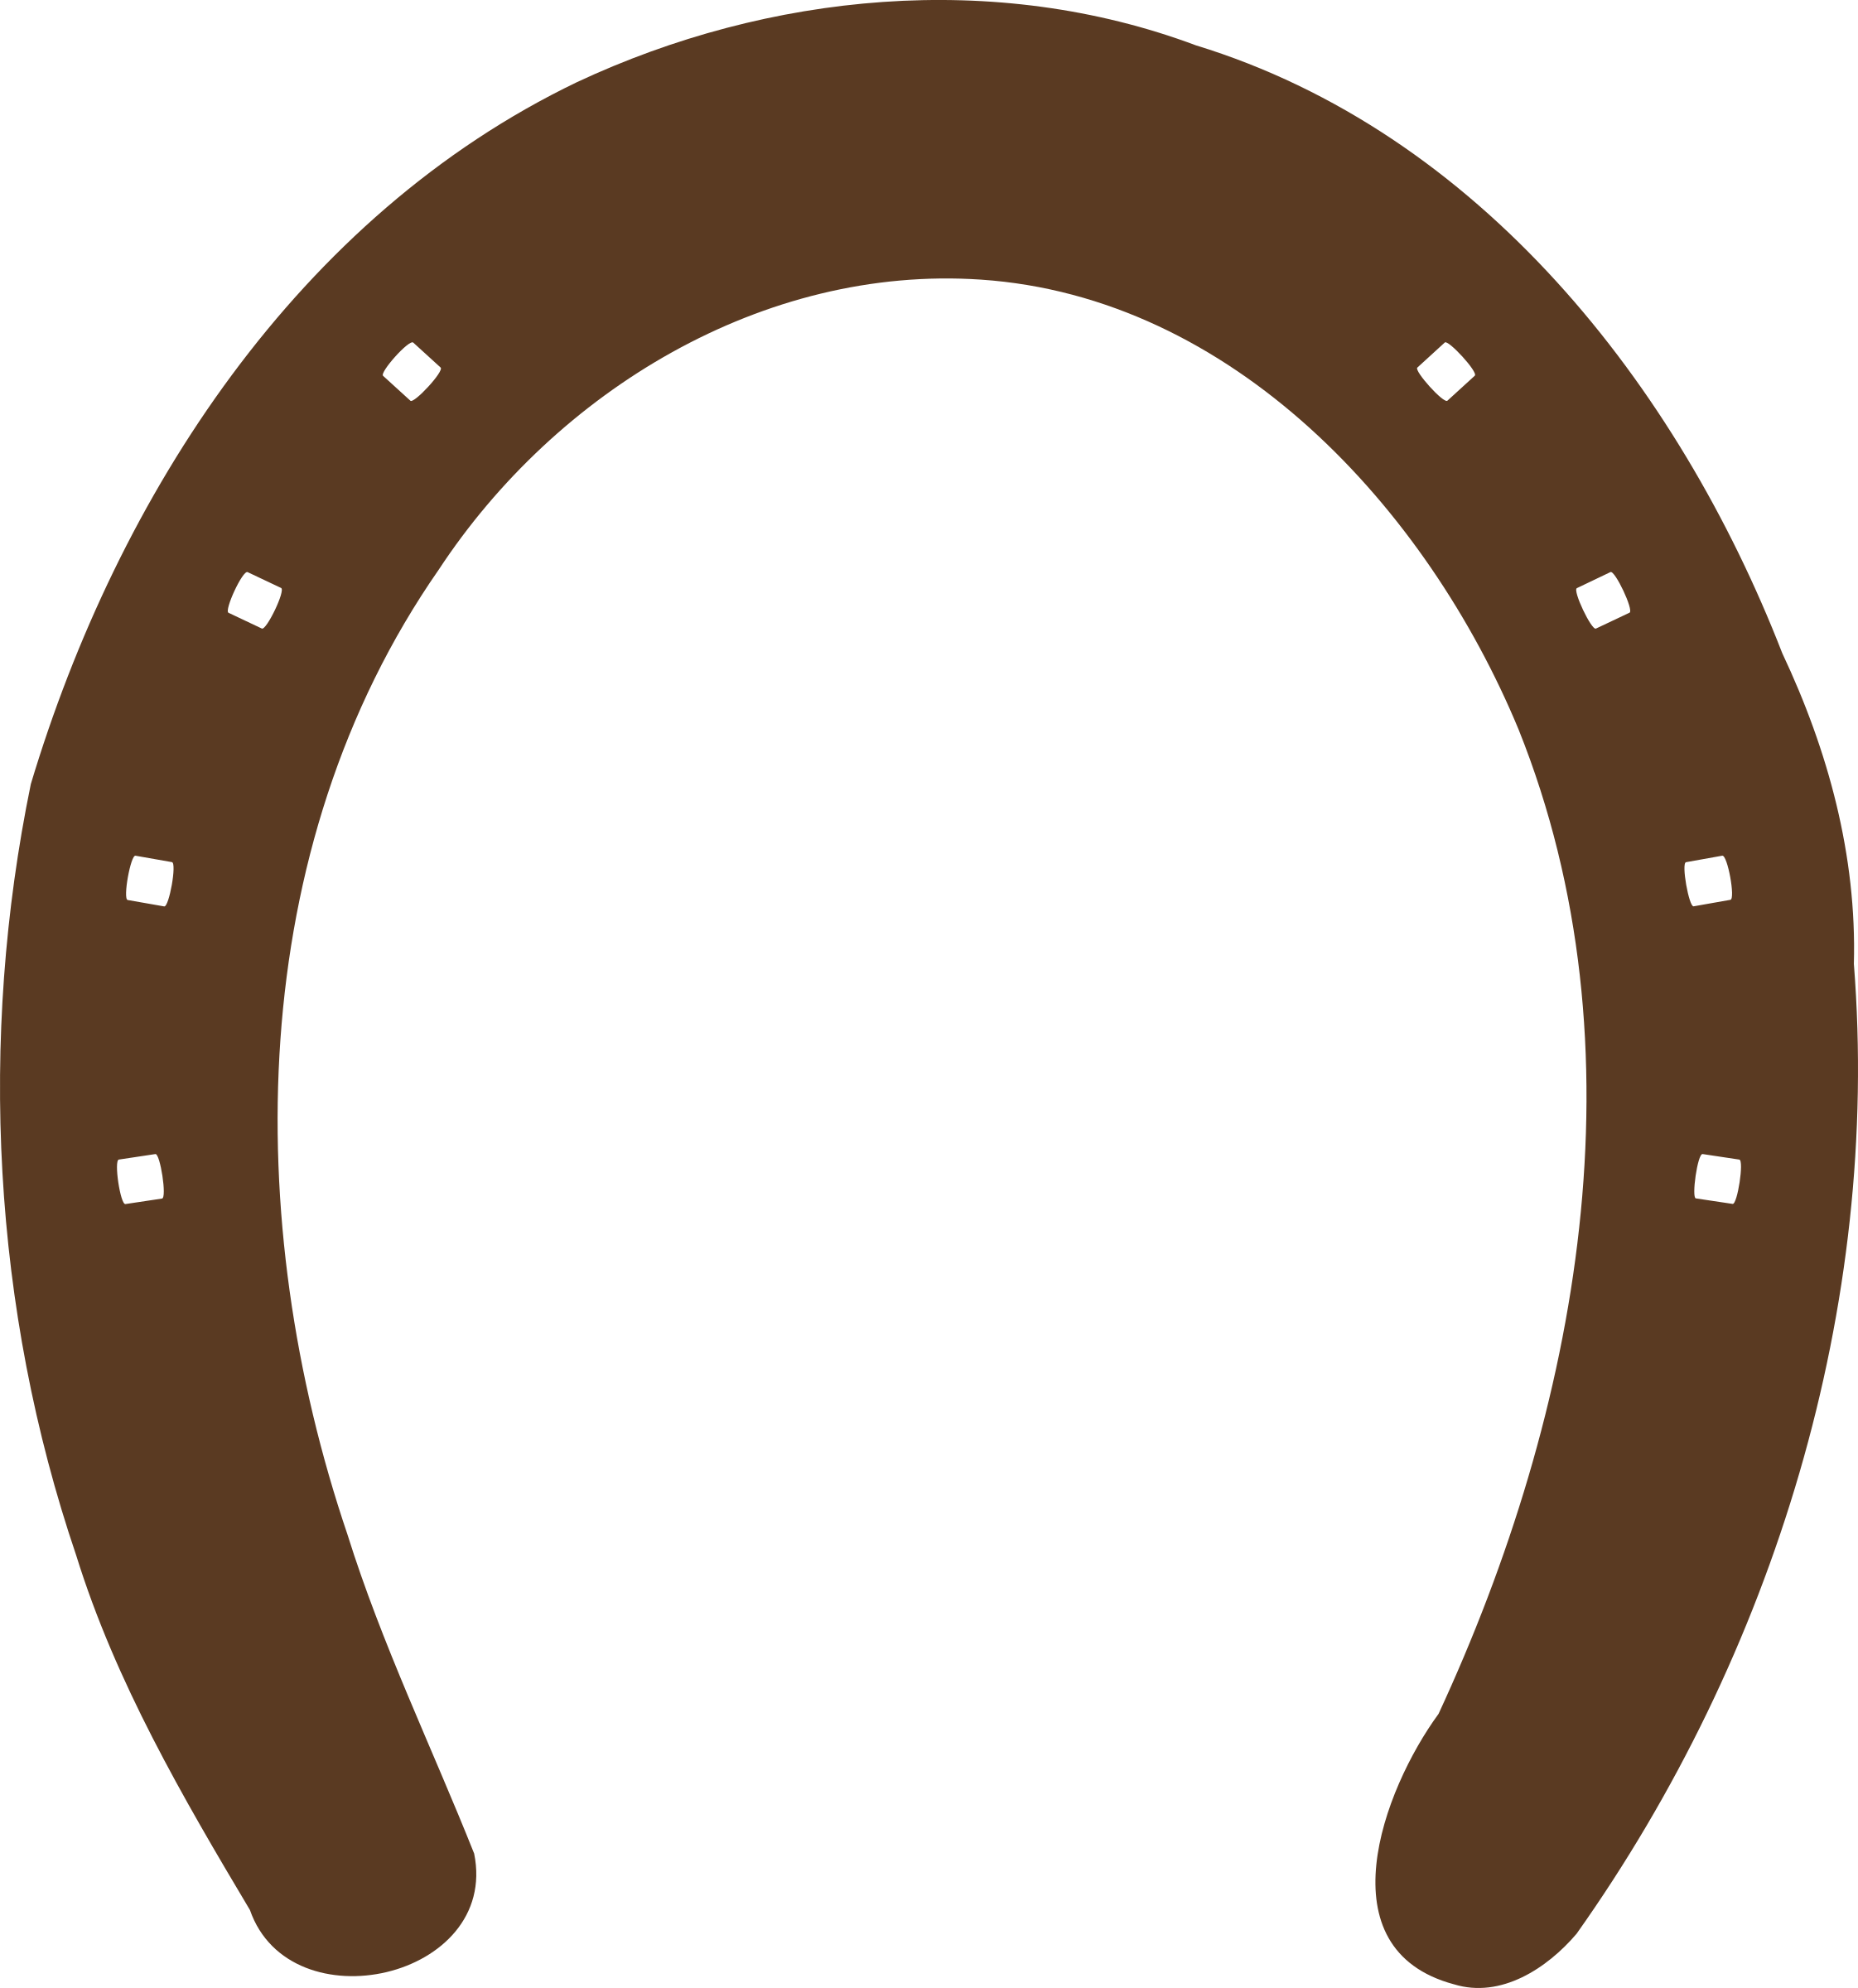 images of horseshoe. Horse clipart template